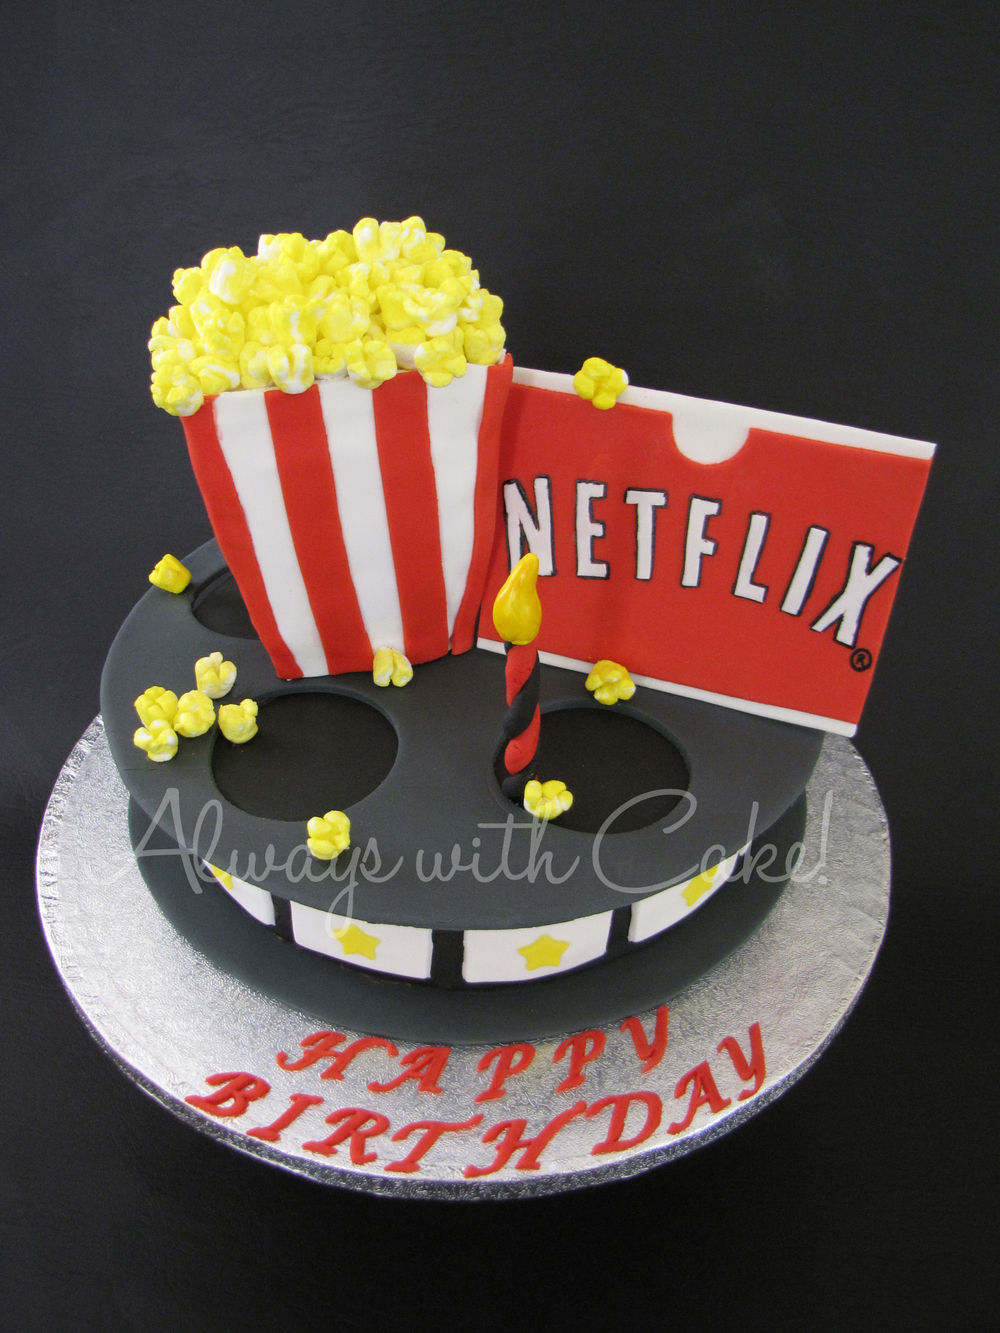 A night for a movie Birthday Cake